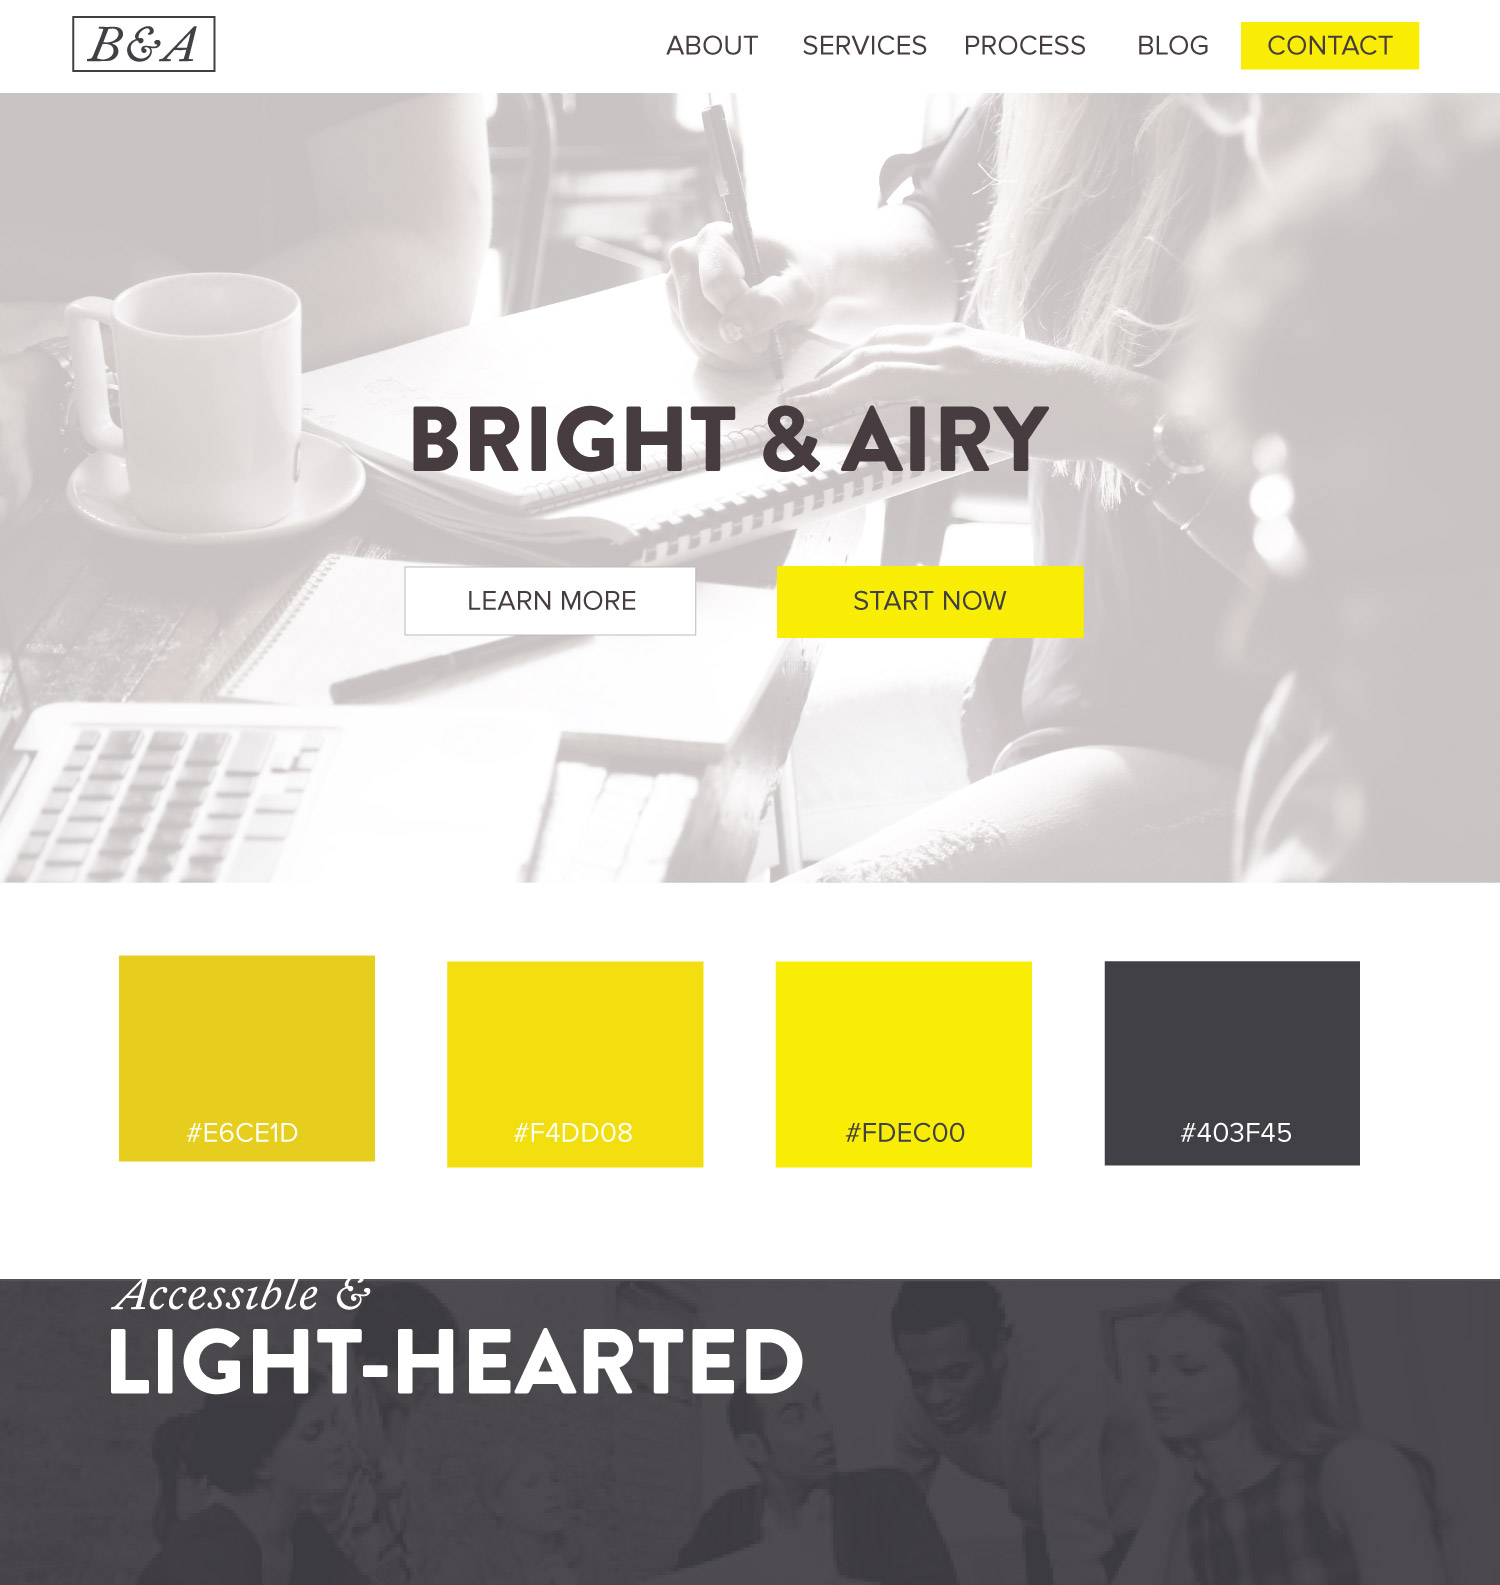 Color Palette Ideas - Web Design - Airy, Accessible, Light, Hearted, Yellow, and dark grey blue